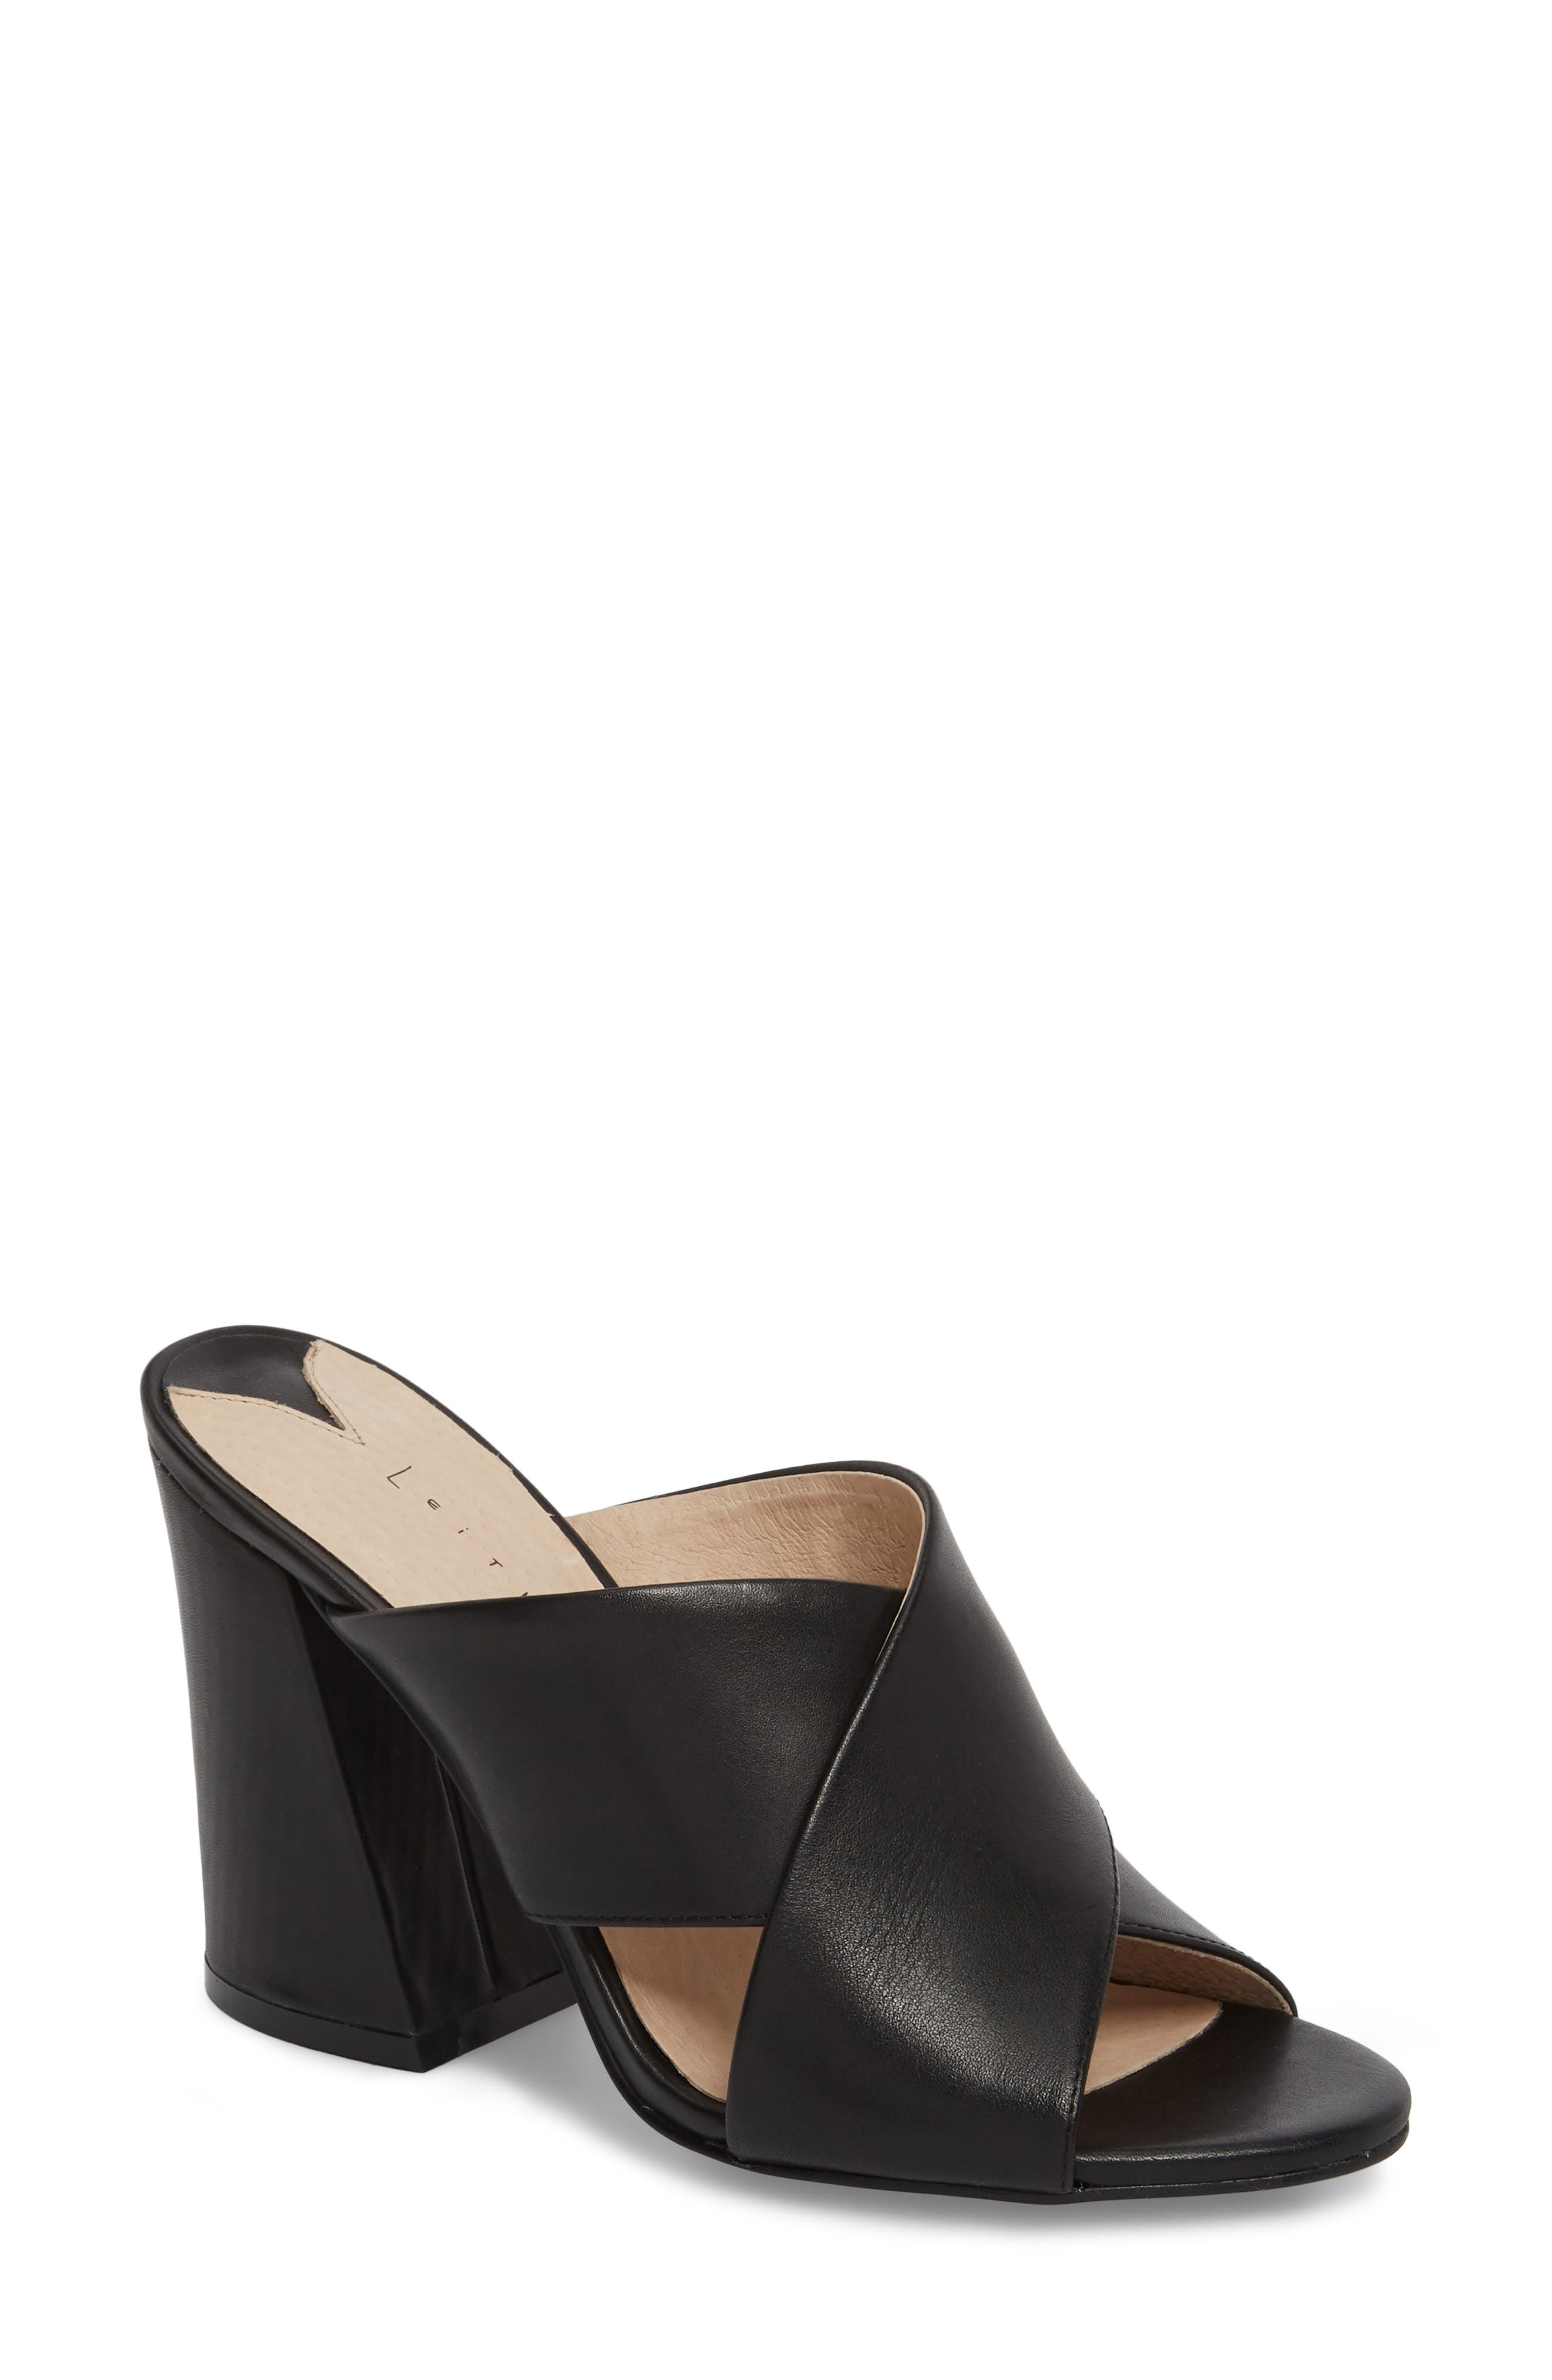 Cammie Block Heel Sandal,                             Main thumbnail 1, color,                             BLACK LEATHER